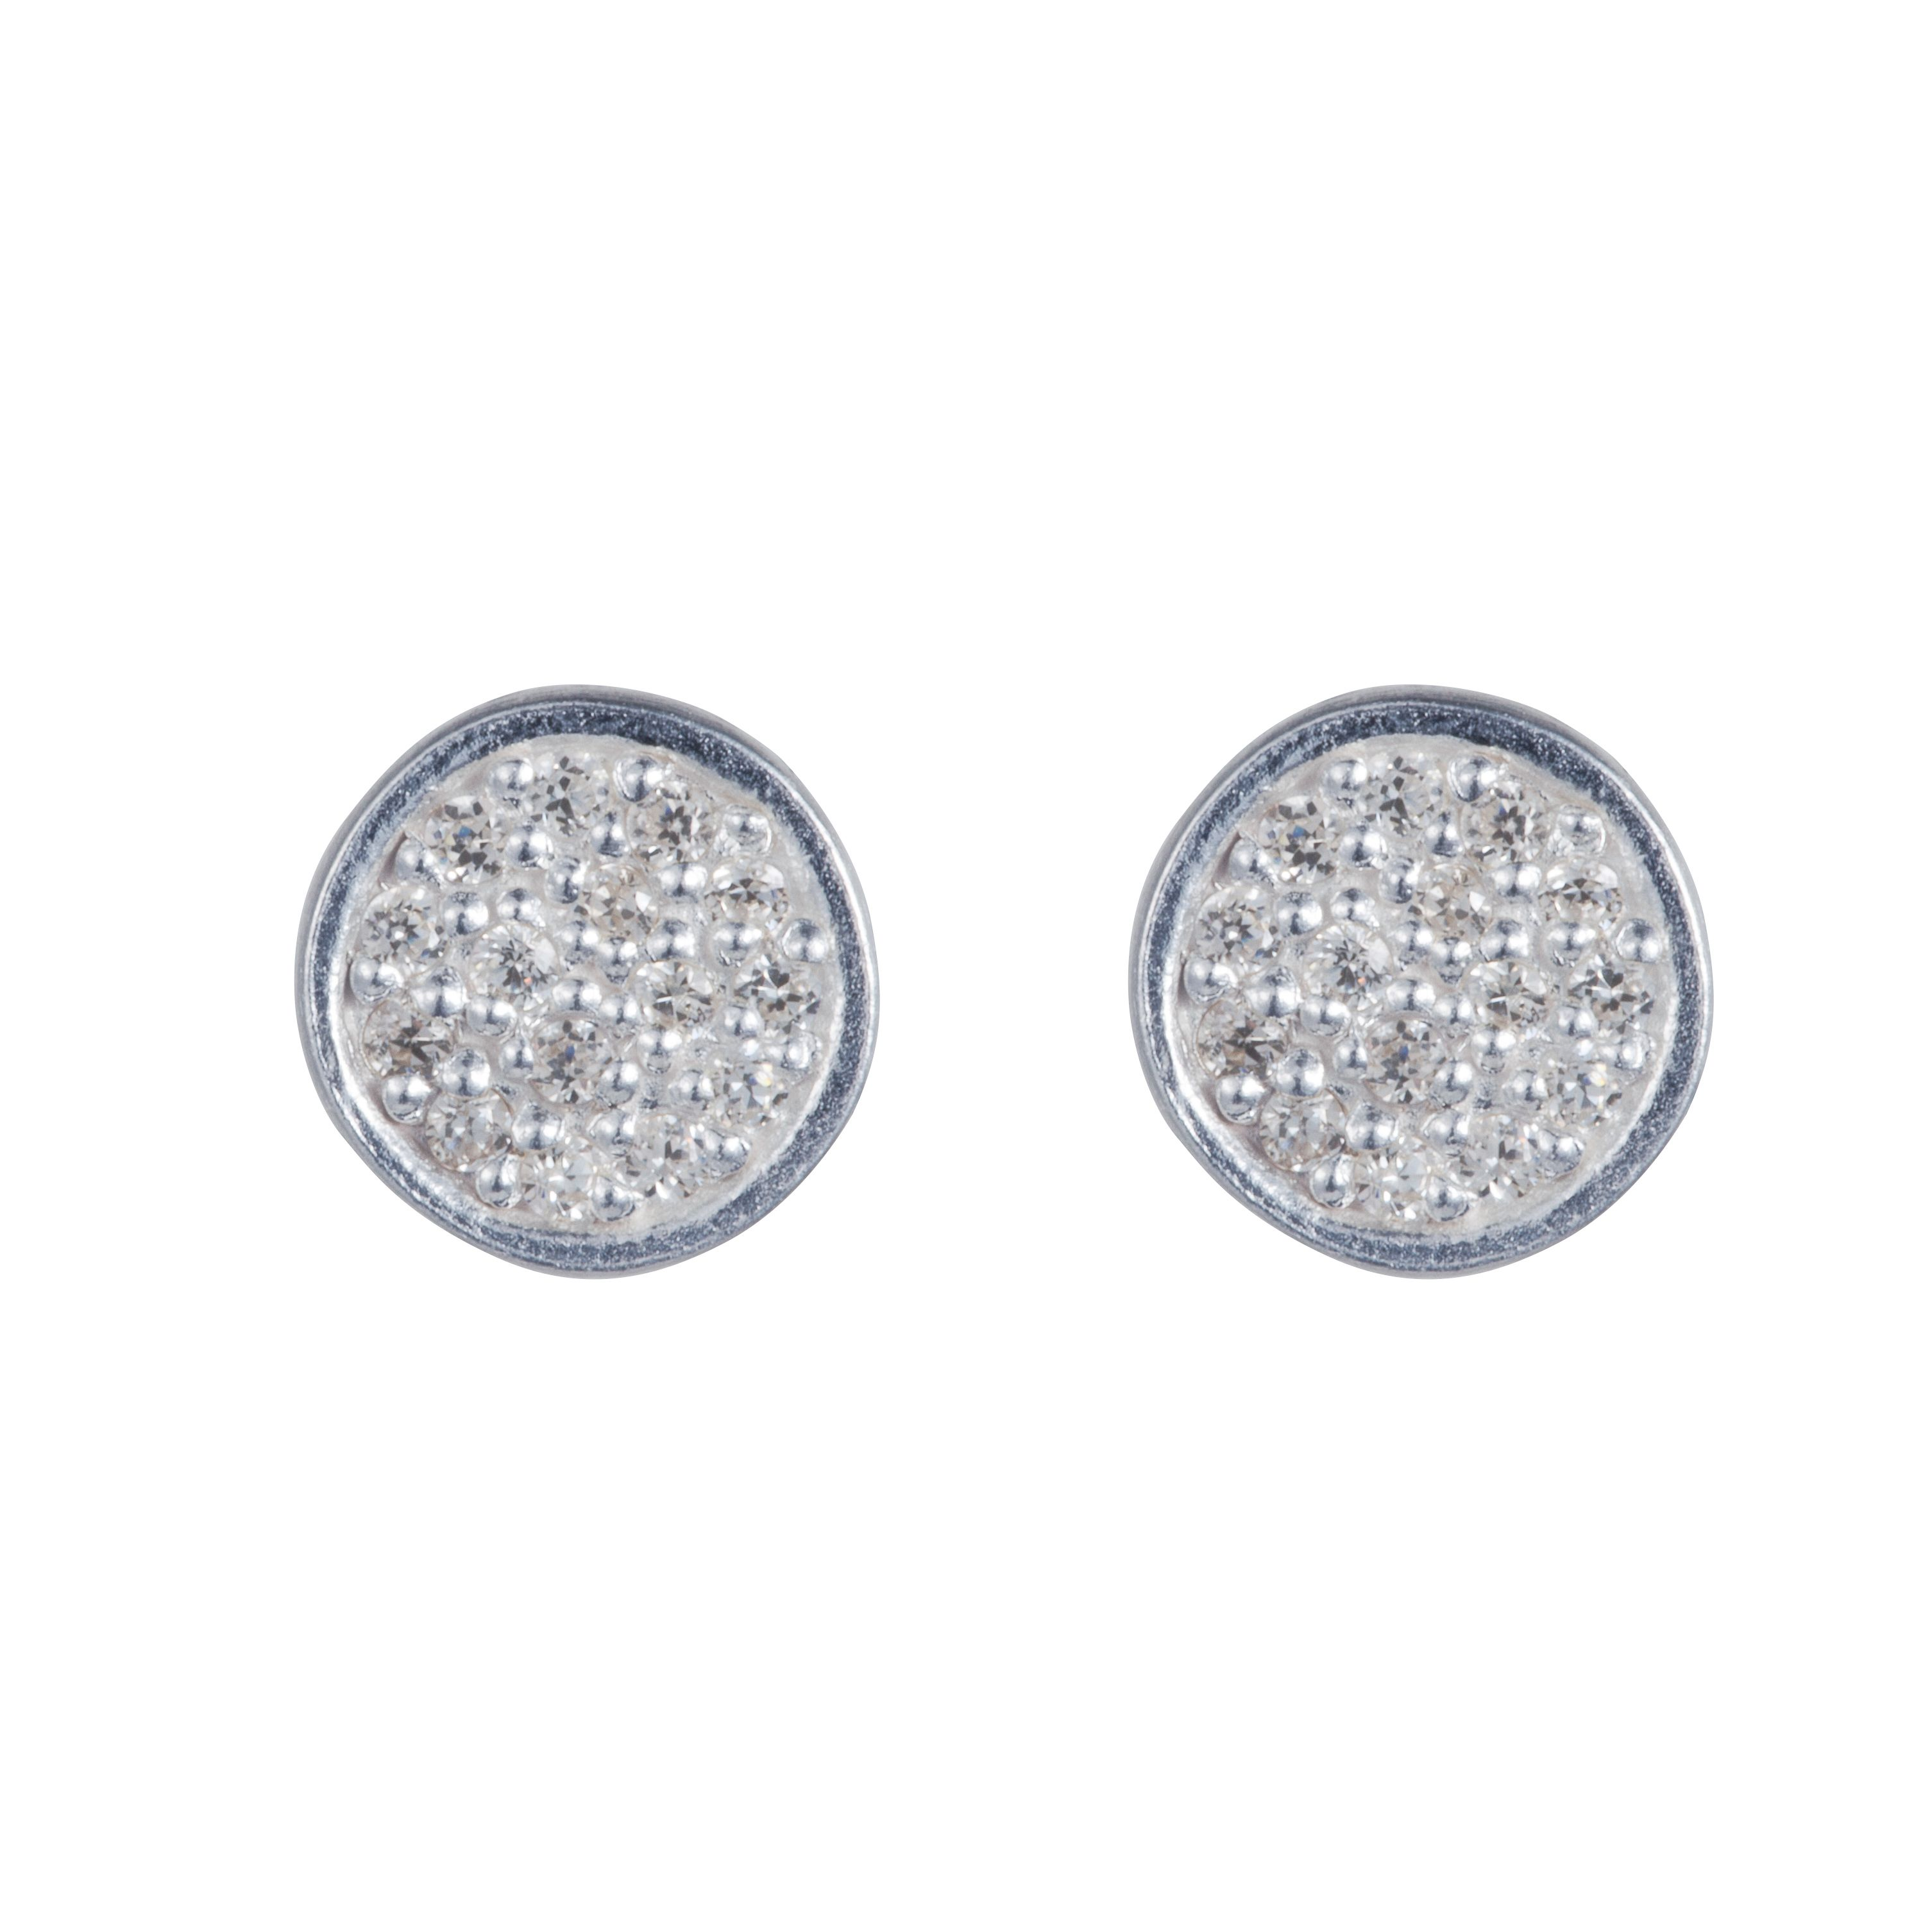 Sterling silver charm stud earrings